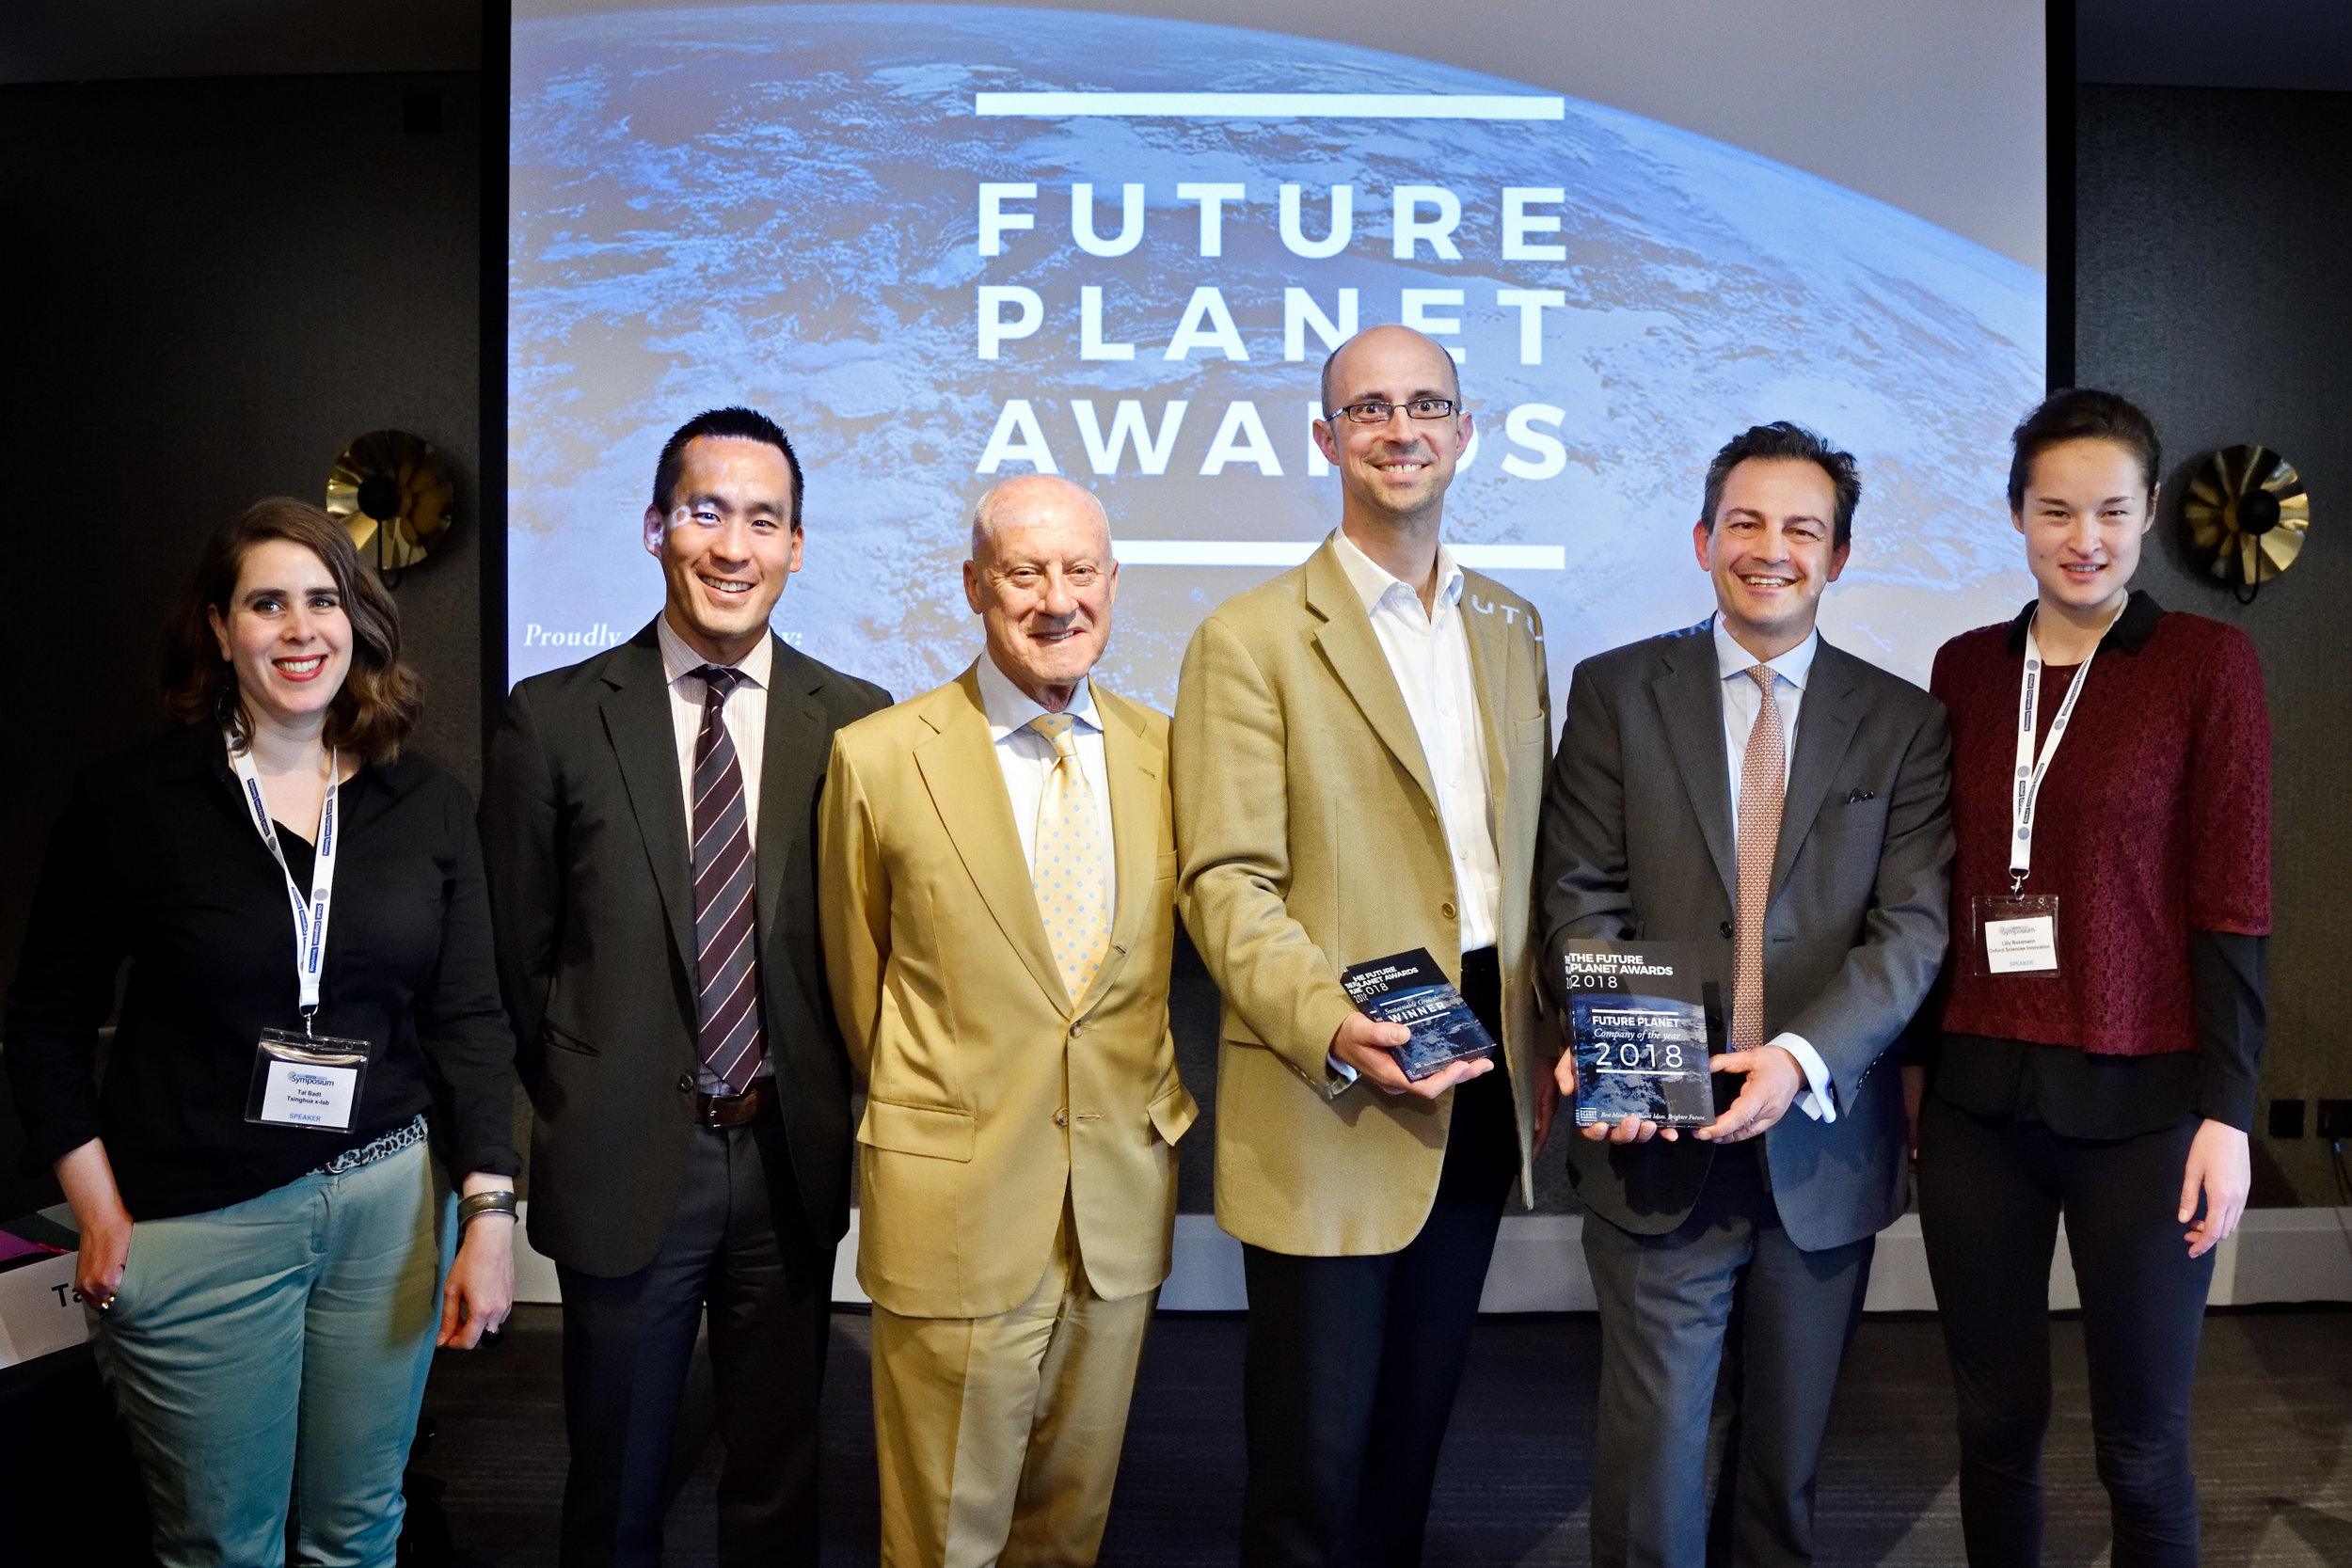 Lord Norman Foster Future Planet Awarsd